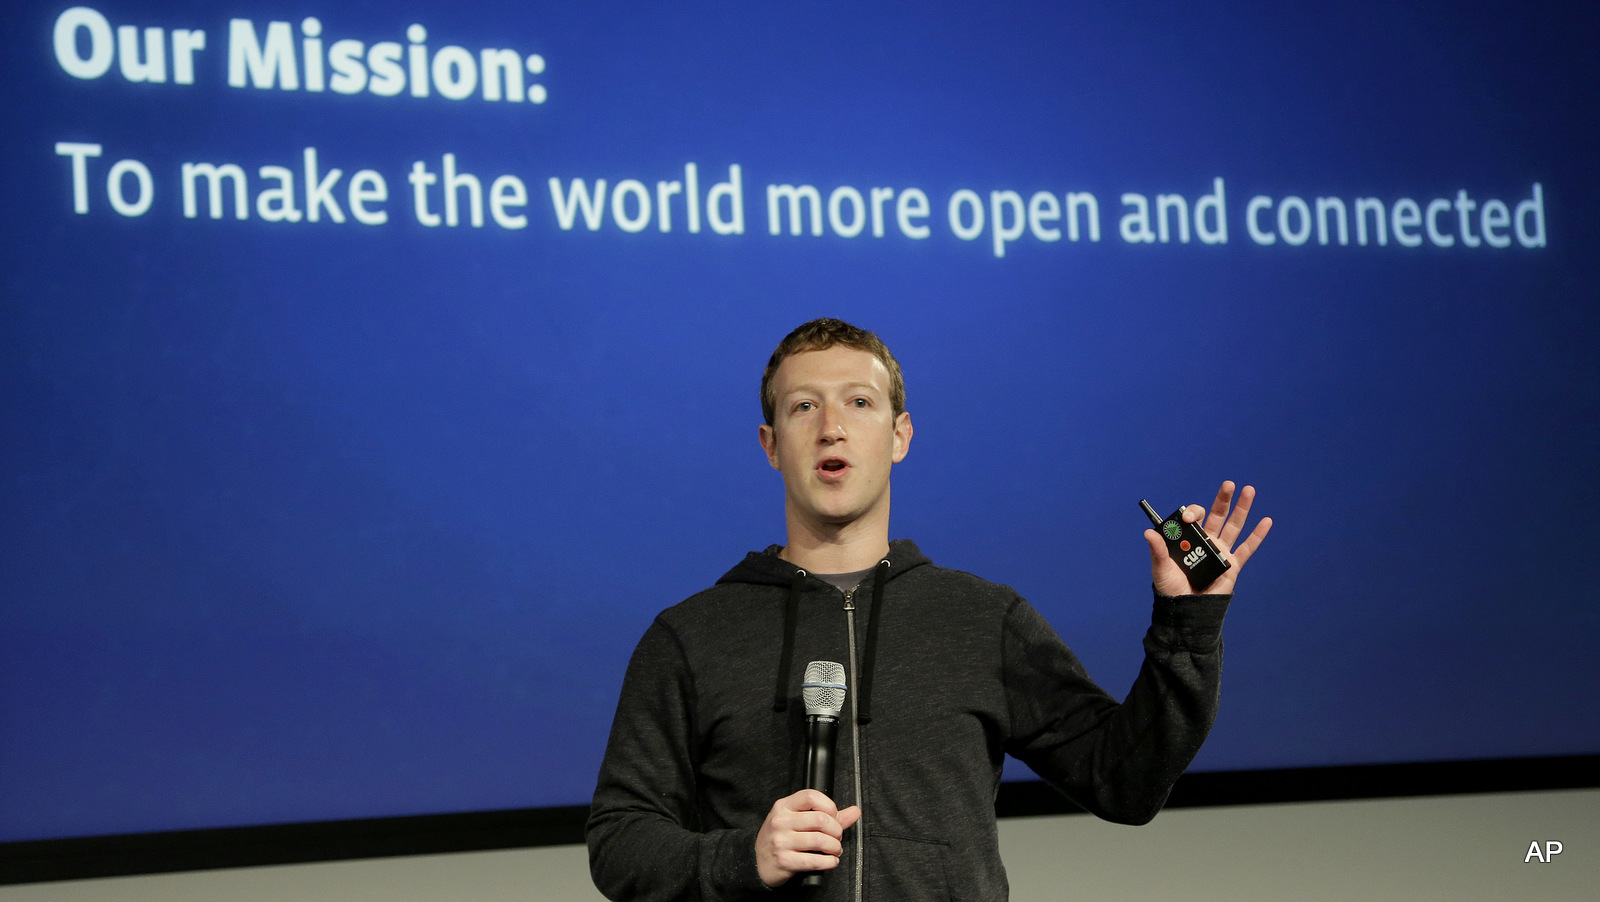 Facebook CEO Mark Zuckerberg speaks at the company's headquarters in Menlo Park, Calif. where Facebook Inc. announced a partnership called Internet.org on Wednesday, Aug. 21, 2013.